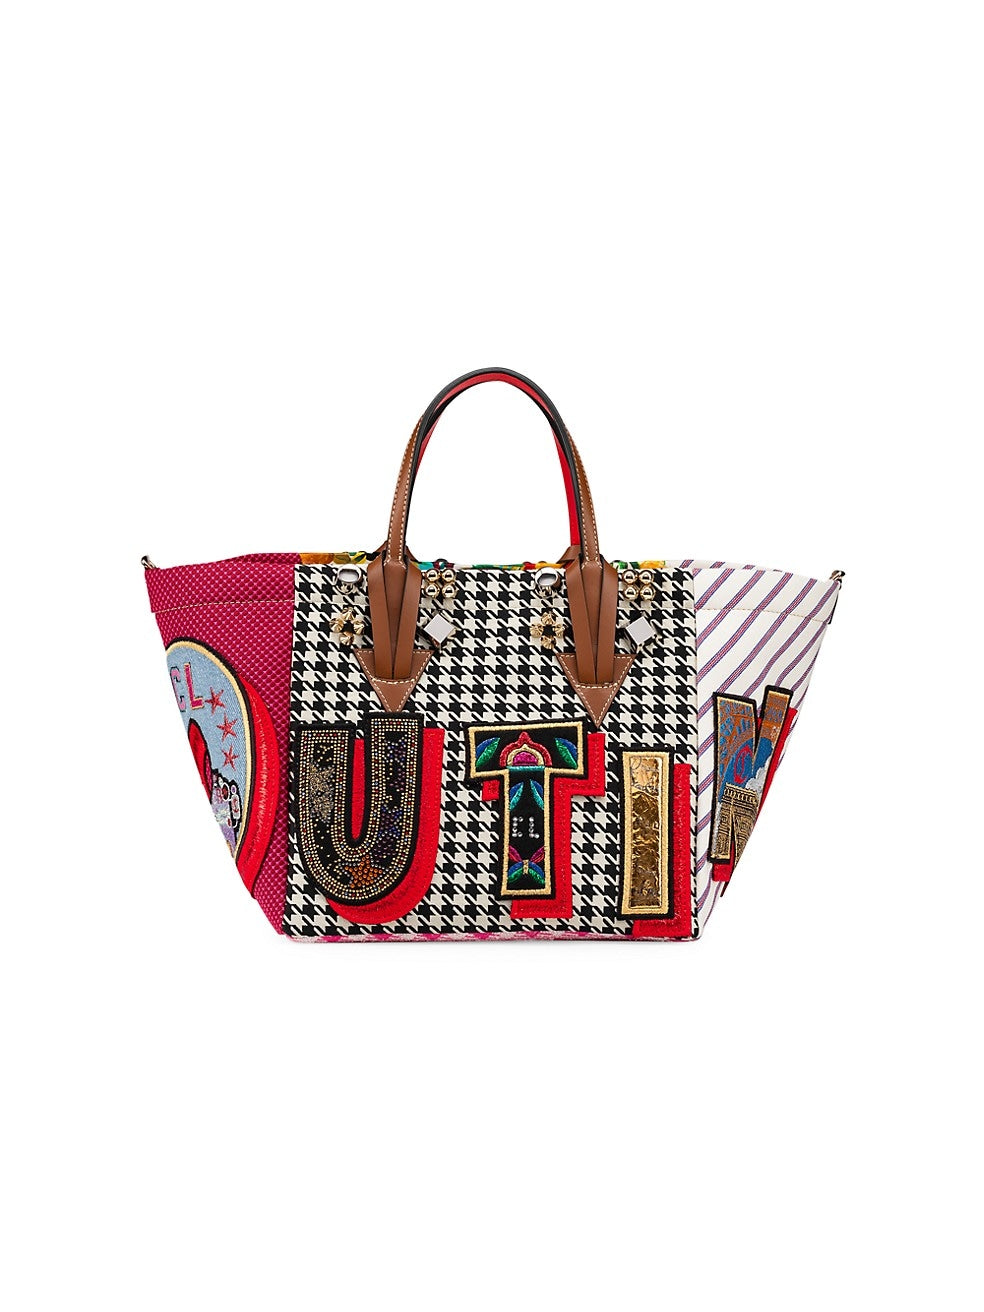 Christian Louboutin Caracaba Small Mix-Print Tote Bag